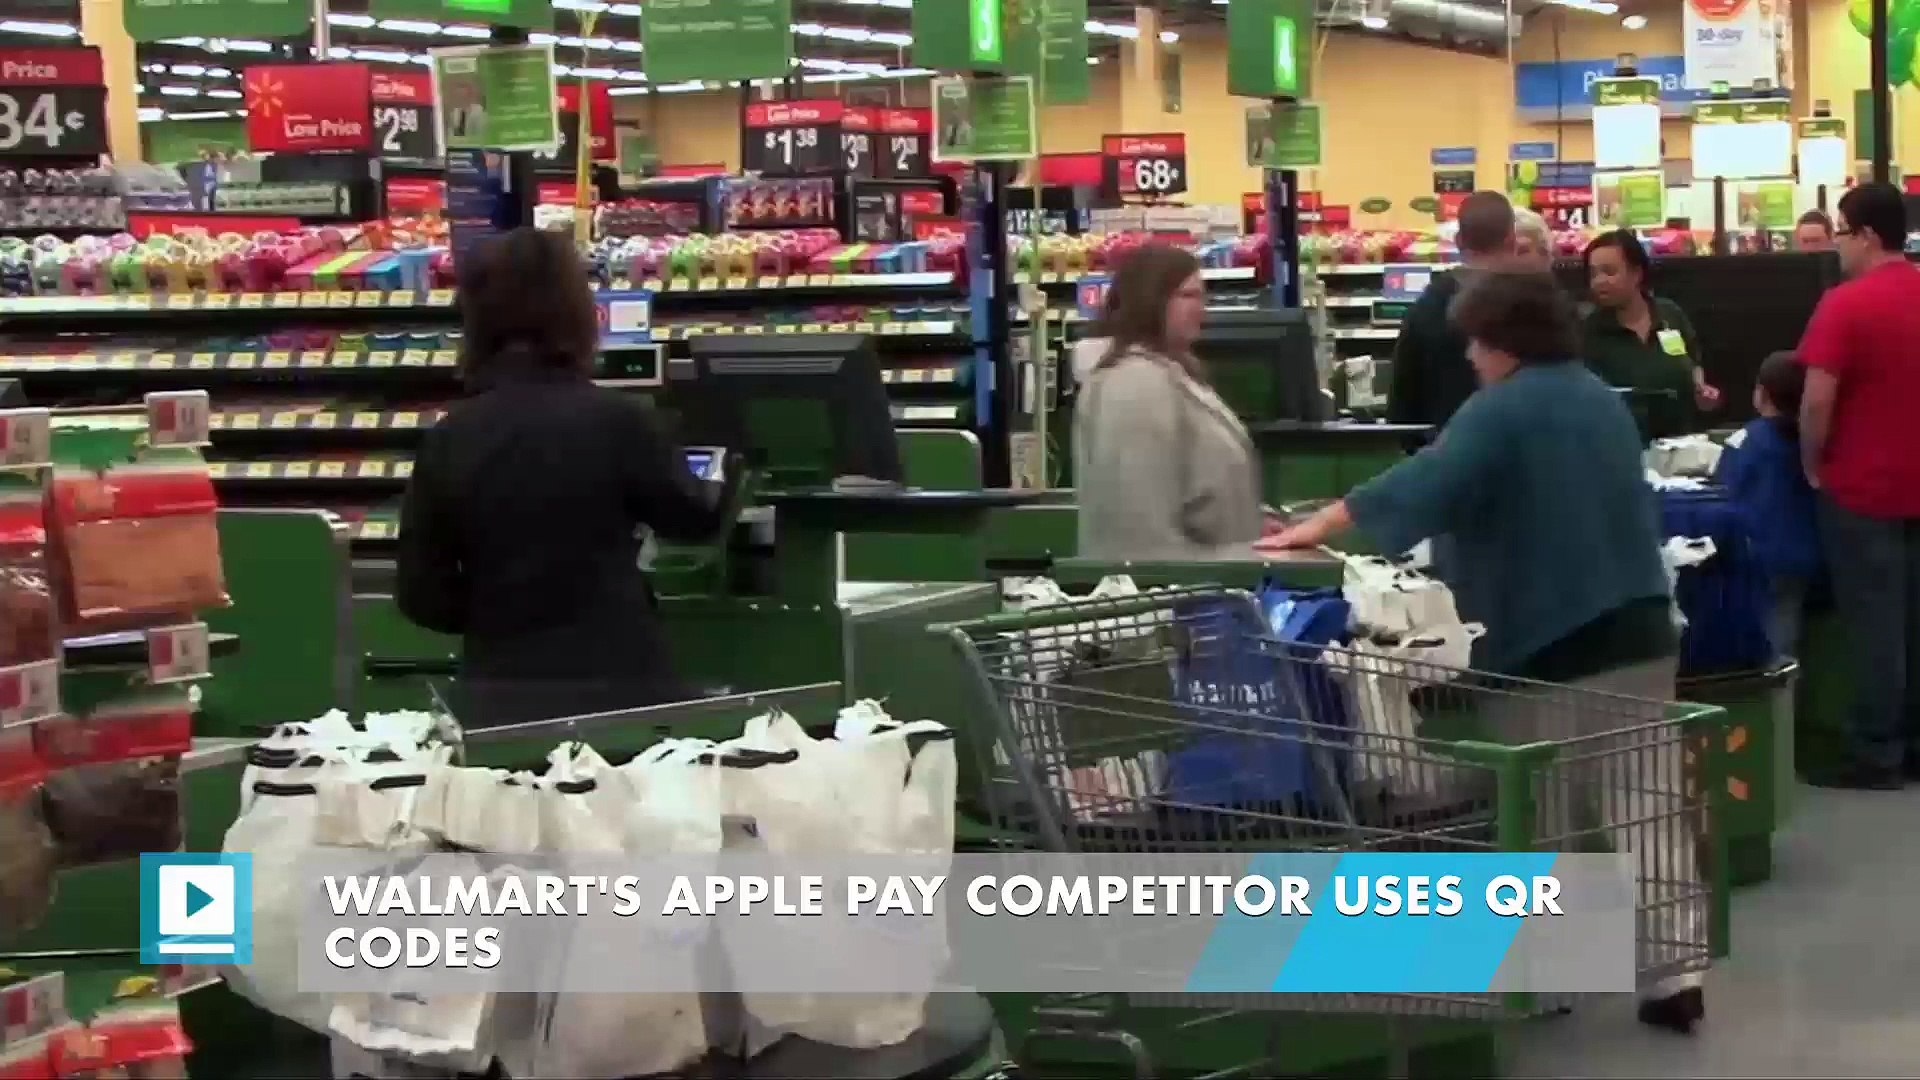 Walmart's Apple Pay competitor uses QR codes